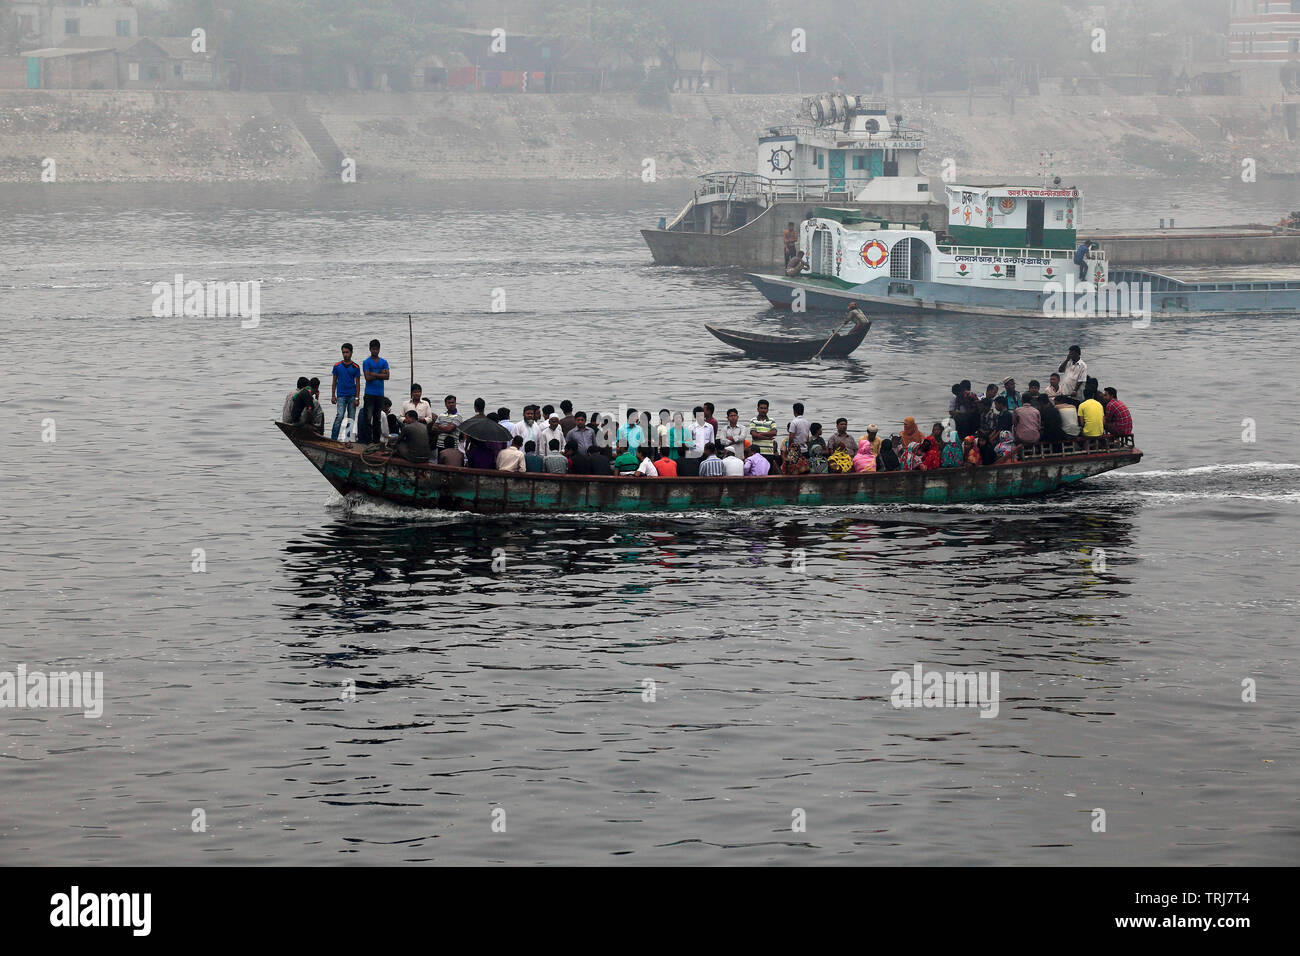 People cross the slimy waters of the polluted Buriganga River every day to reach their destinations. Dhaka, Bangladesh. - Stock Image